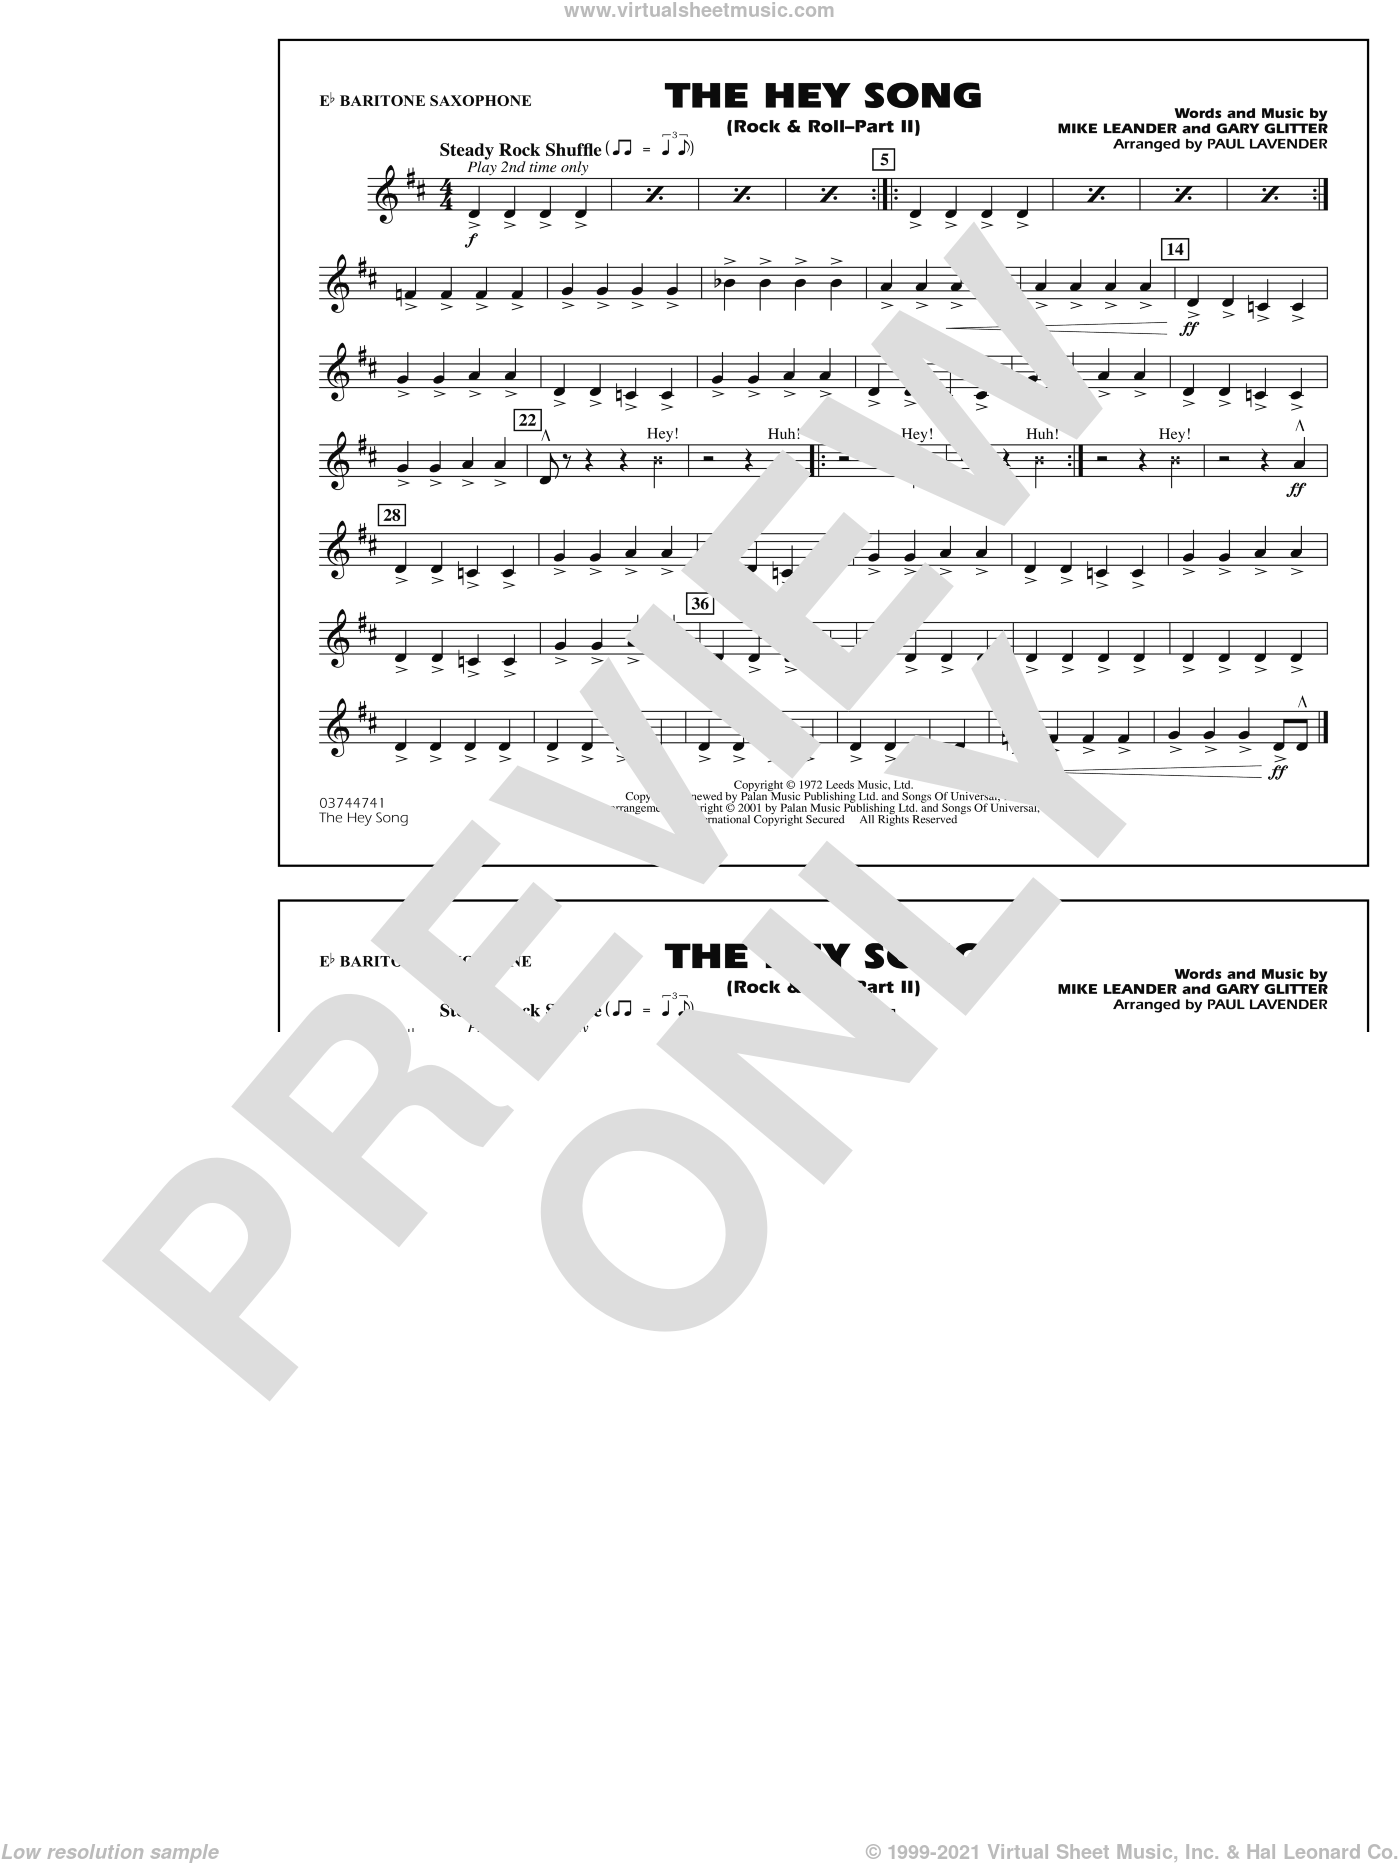 Rock and Roll, part ii (the hey song) sheet music for marching band (Eb baritone sax) by Mike Leander